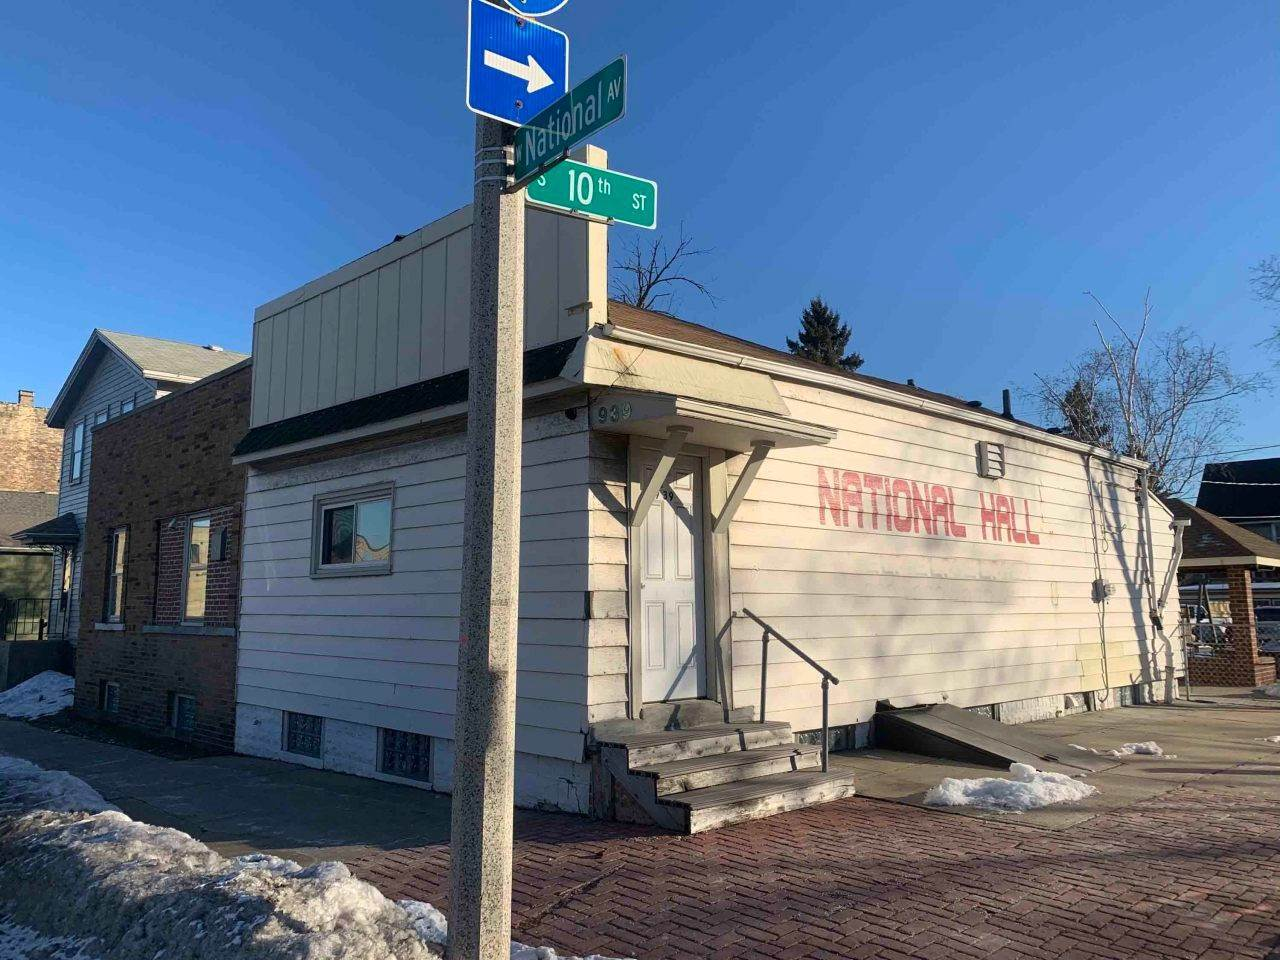 Commercial / Industrial for Sale at 935 W National Avenue Milwaukee, Wisconsin 53204 United States